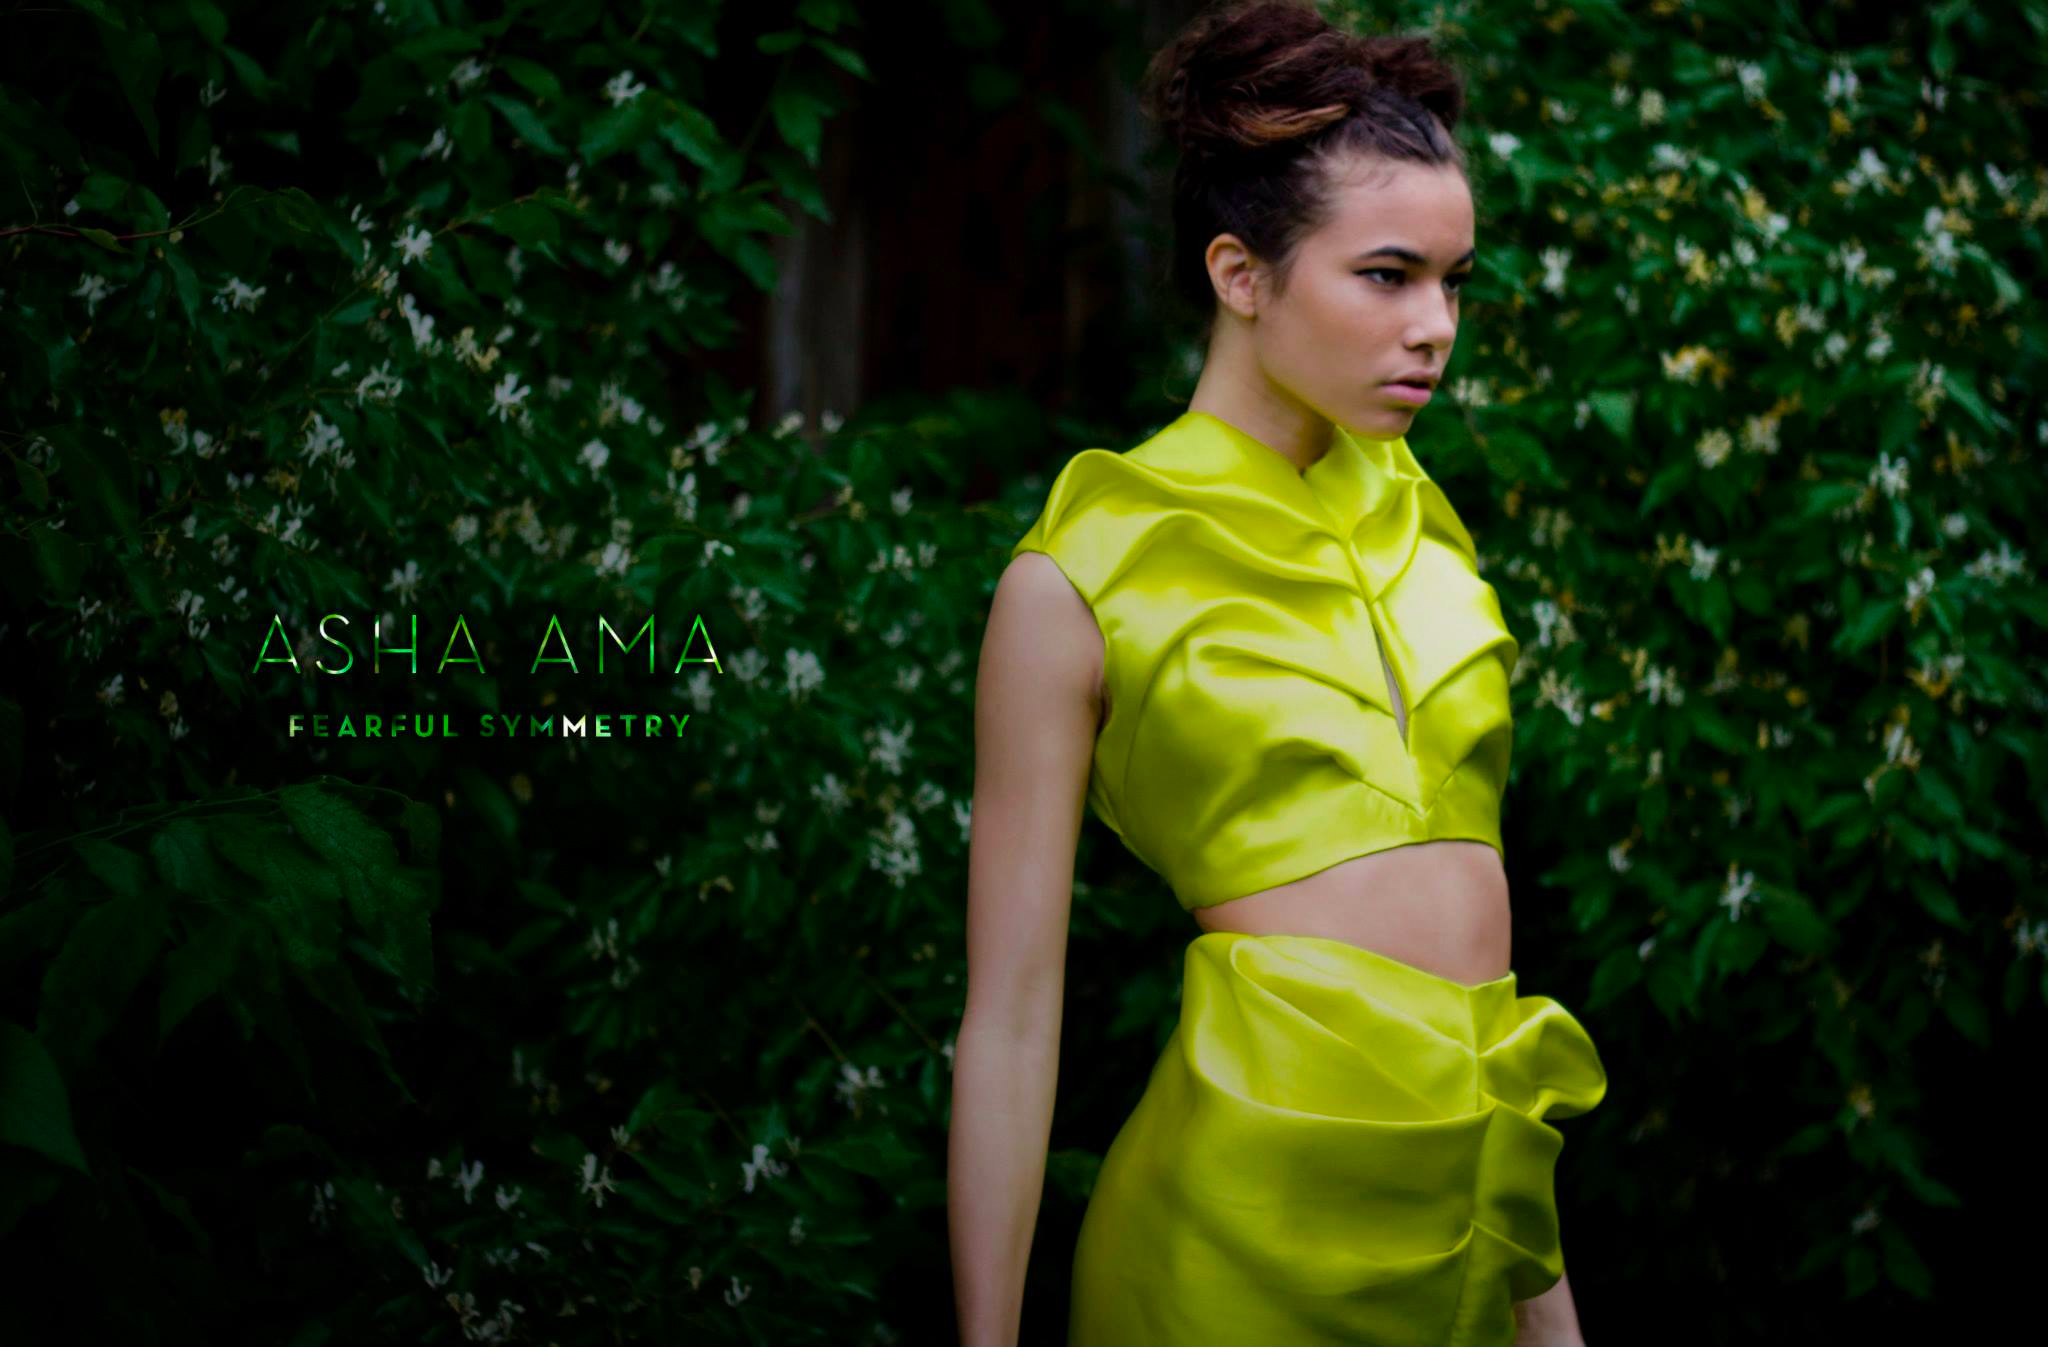 DAAP graduate and fashion designer Asha Daniels is launching her first collection on Dec. 1.